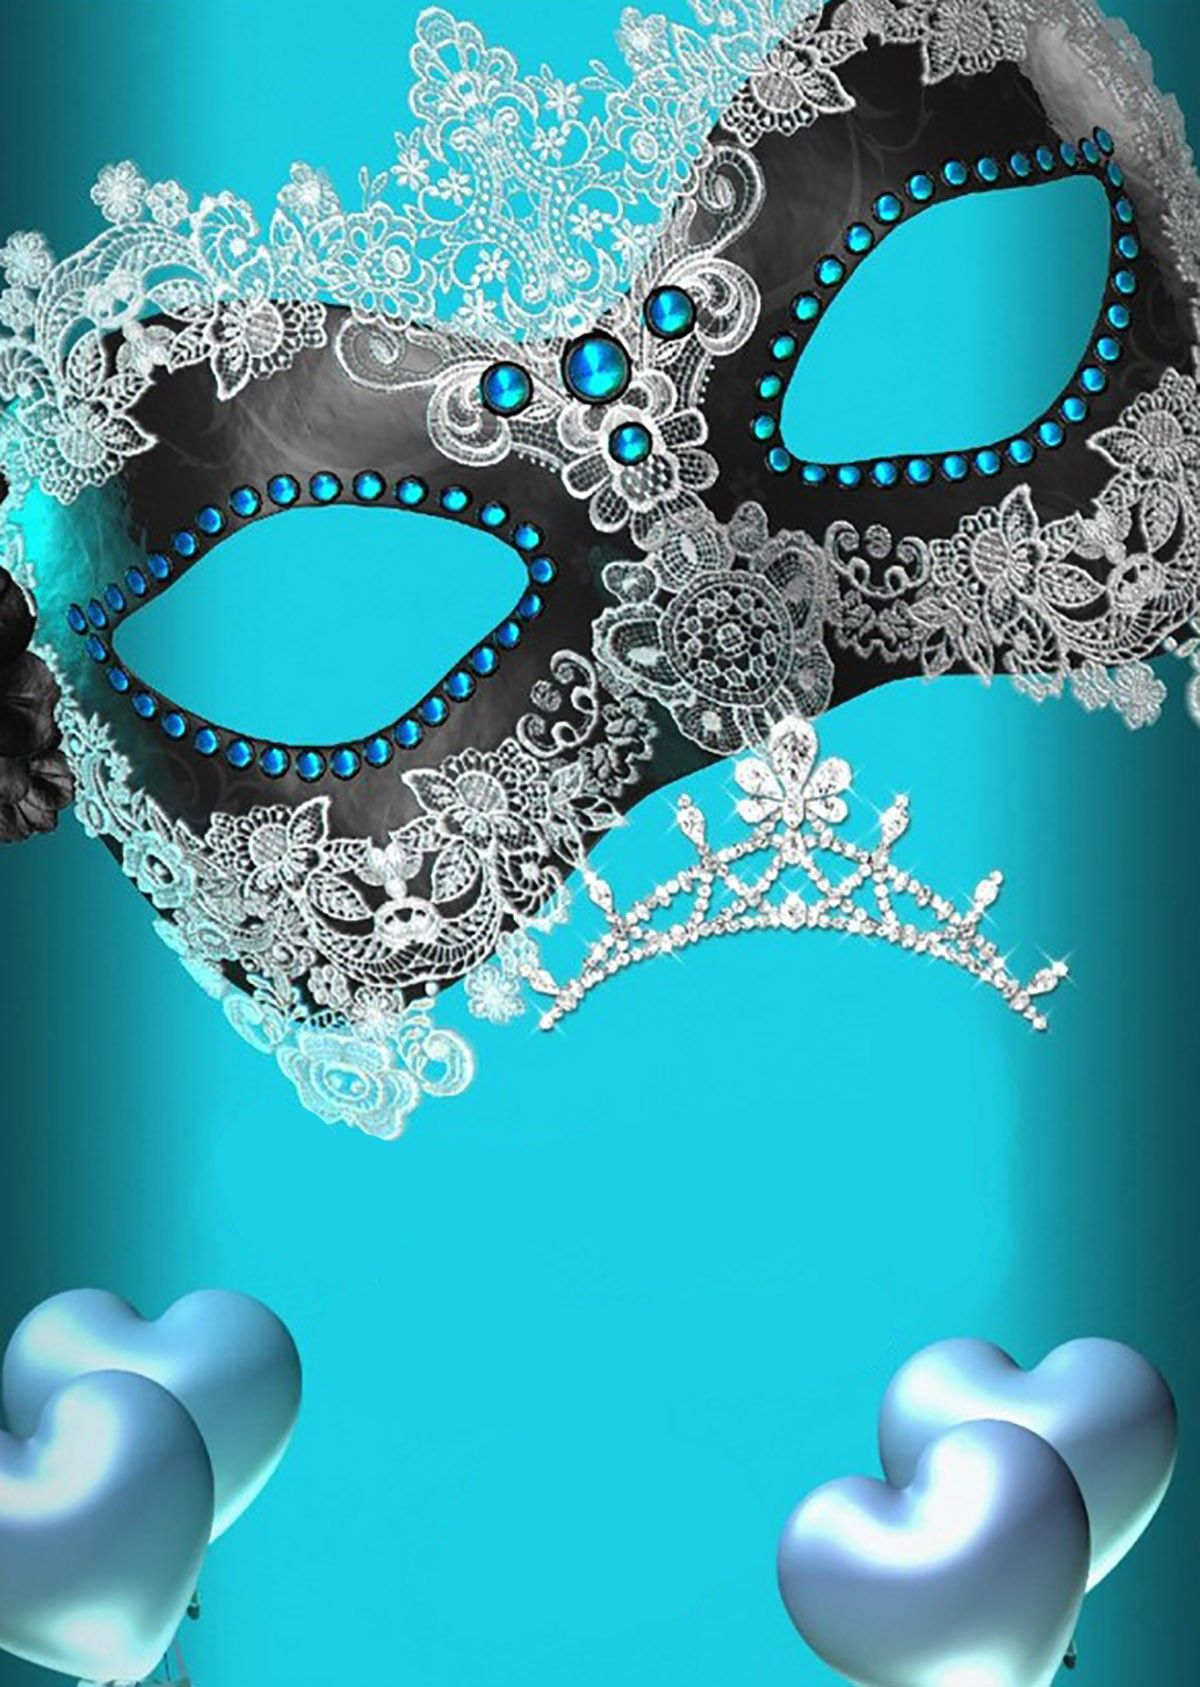 image about Free Printable Masquerade Invitations identify Free of charge Printable Masquerade Invitation Templates Invites